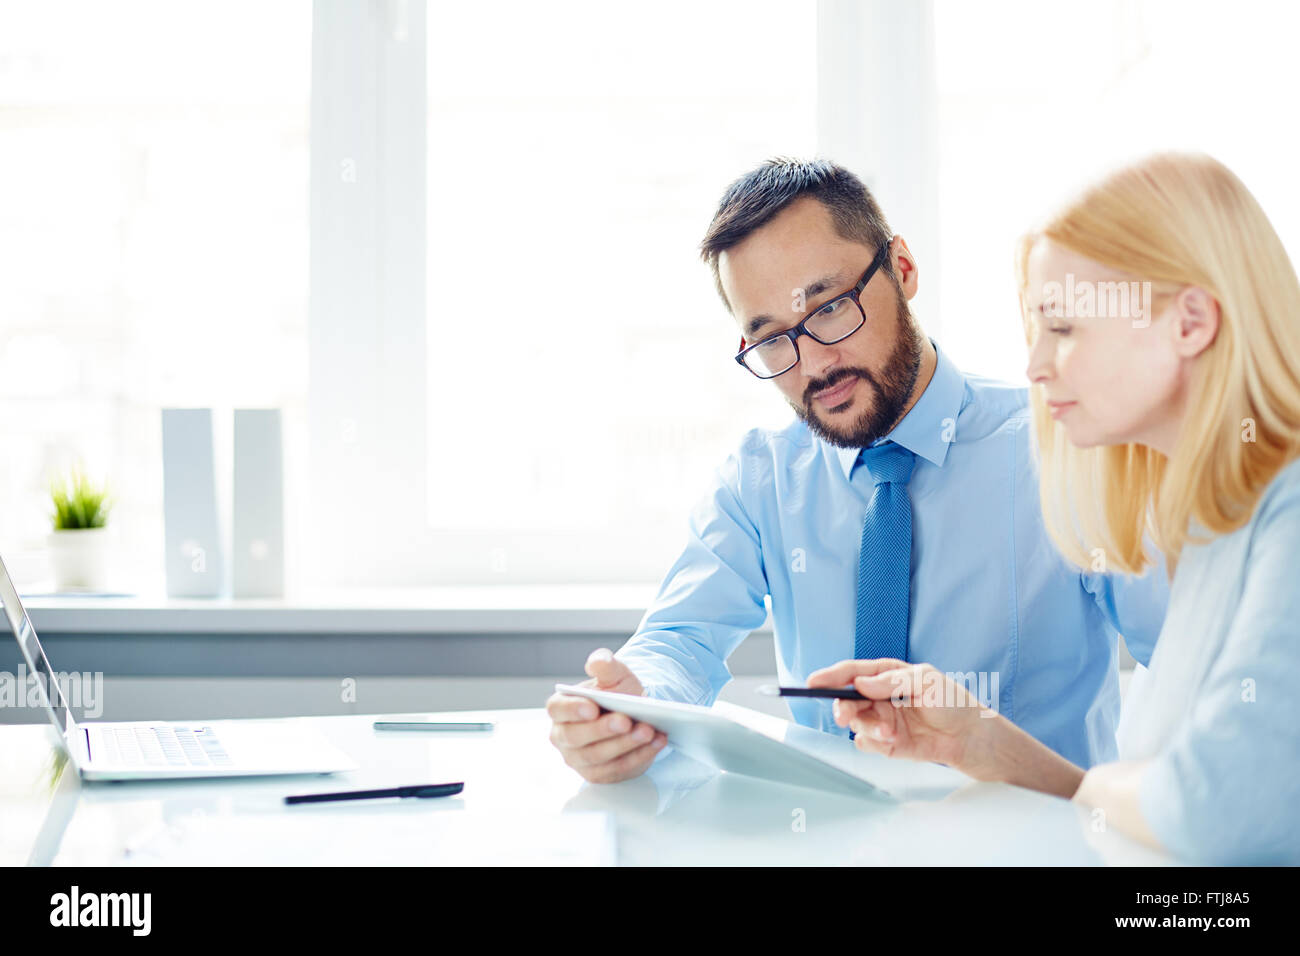 Colleagues interacting - Stock Image